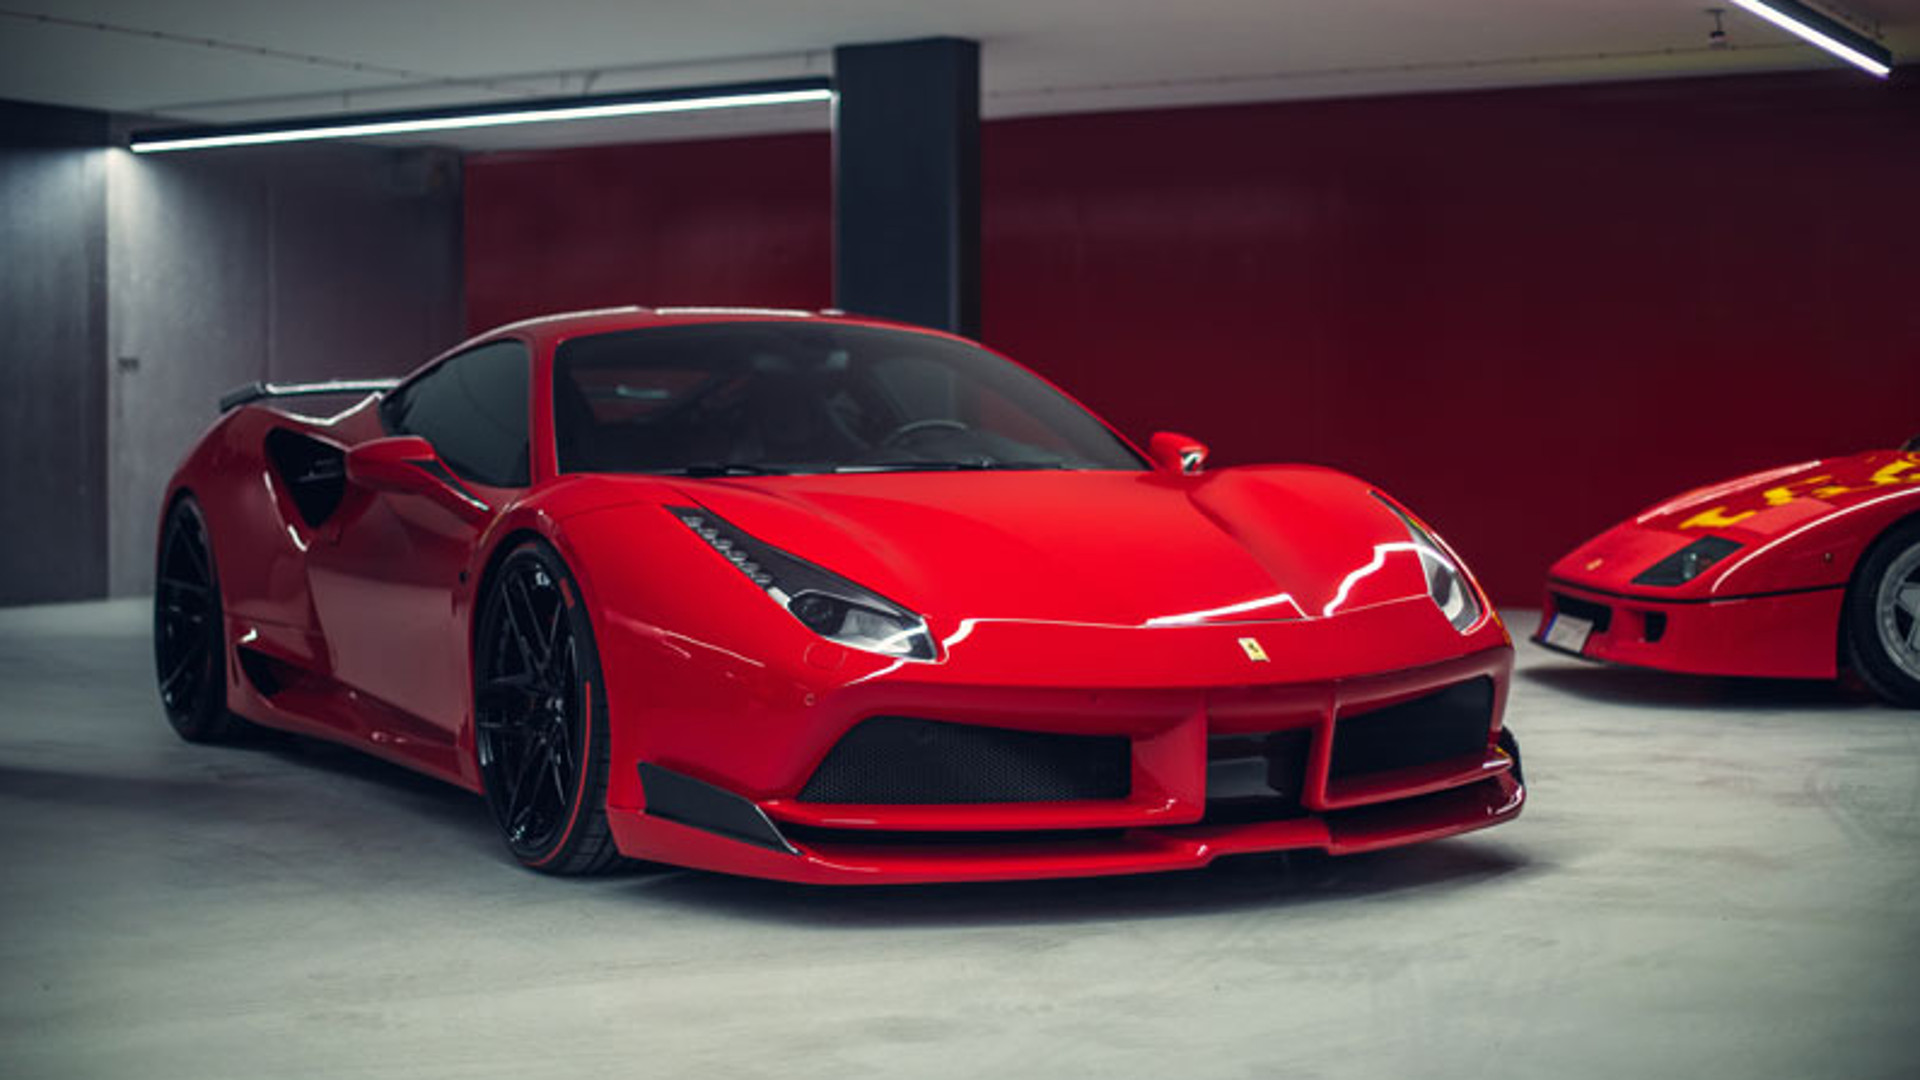 Image Result For Bmw Ferrari Looking Car